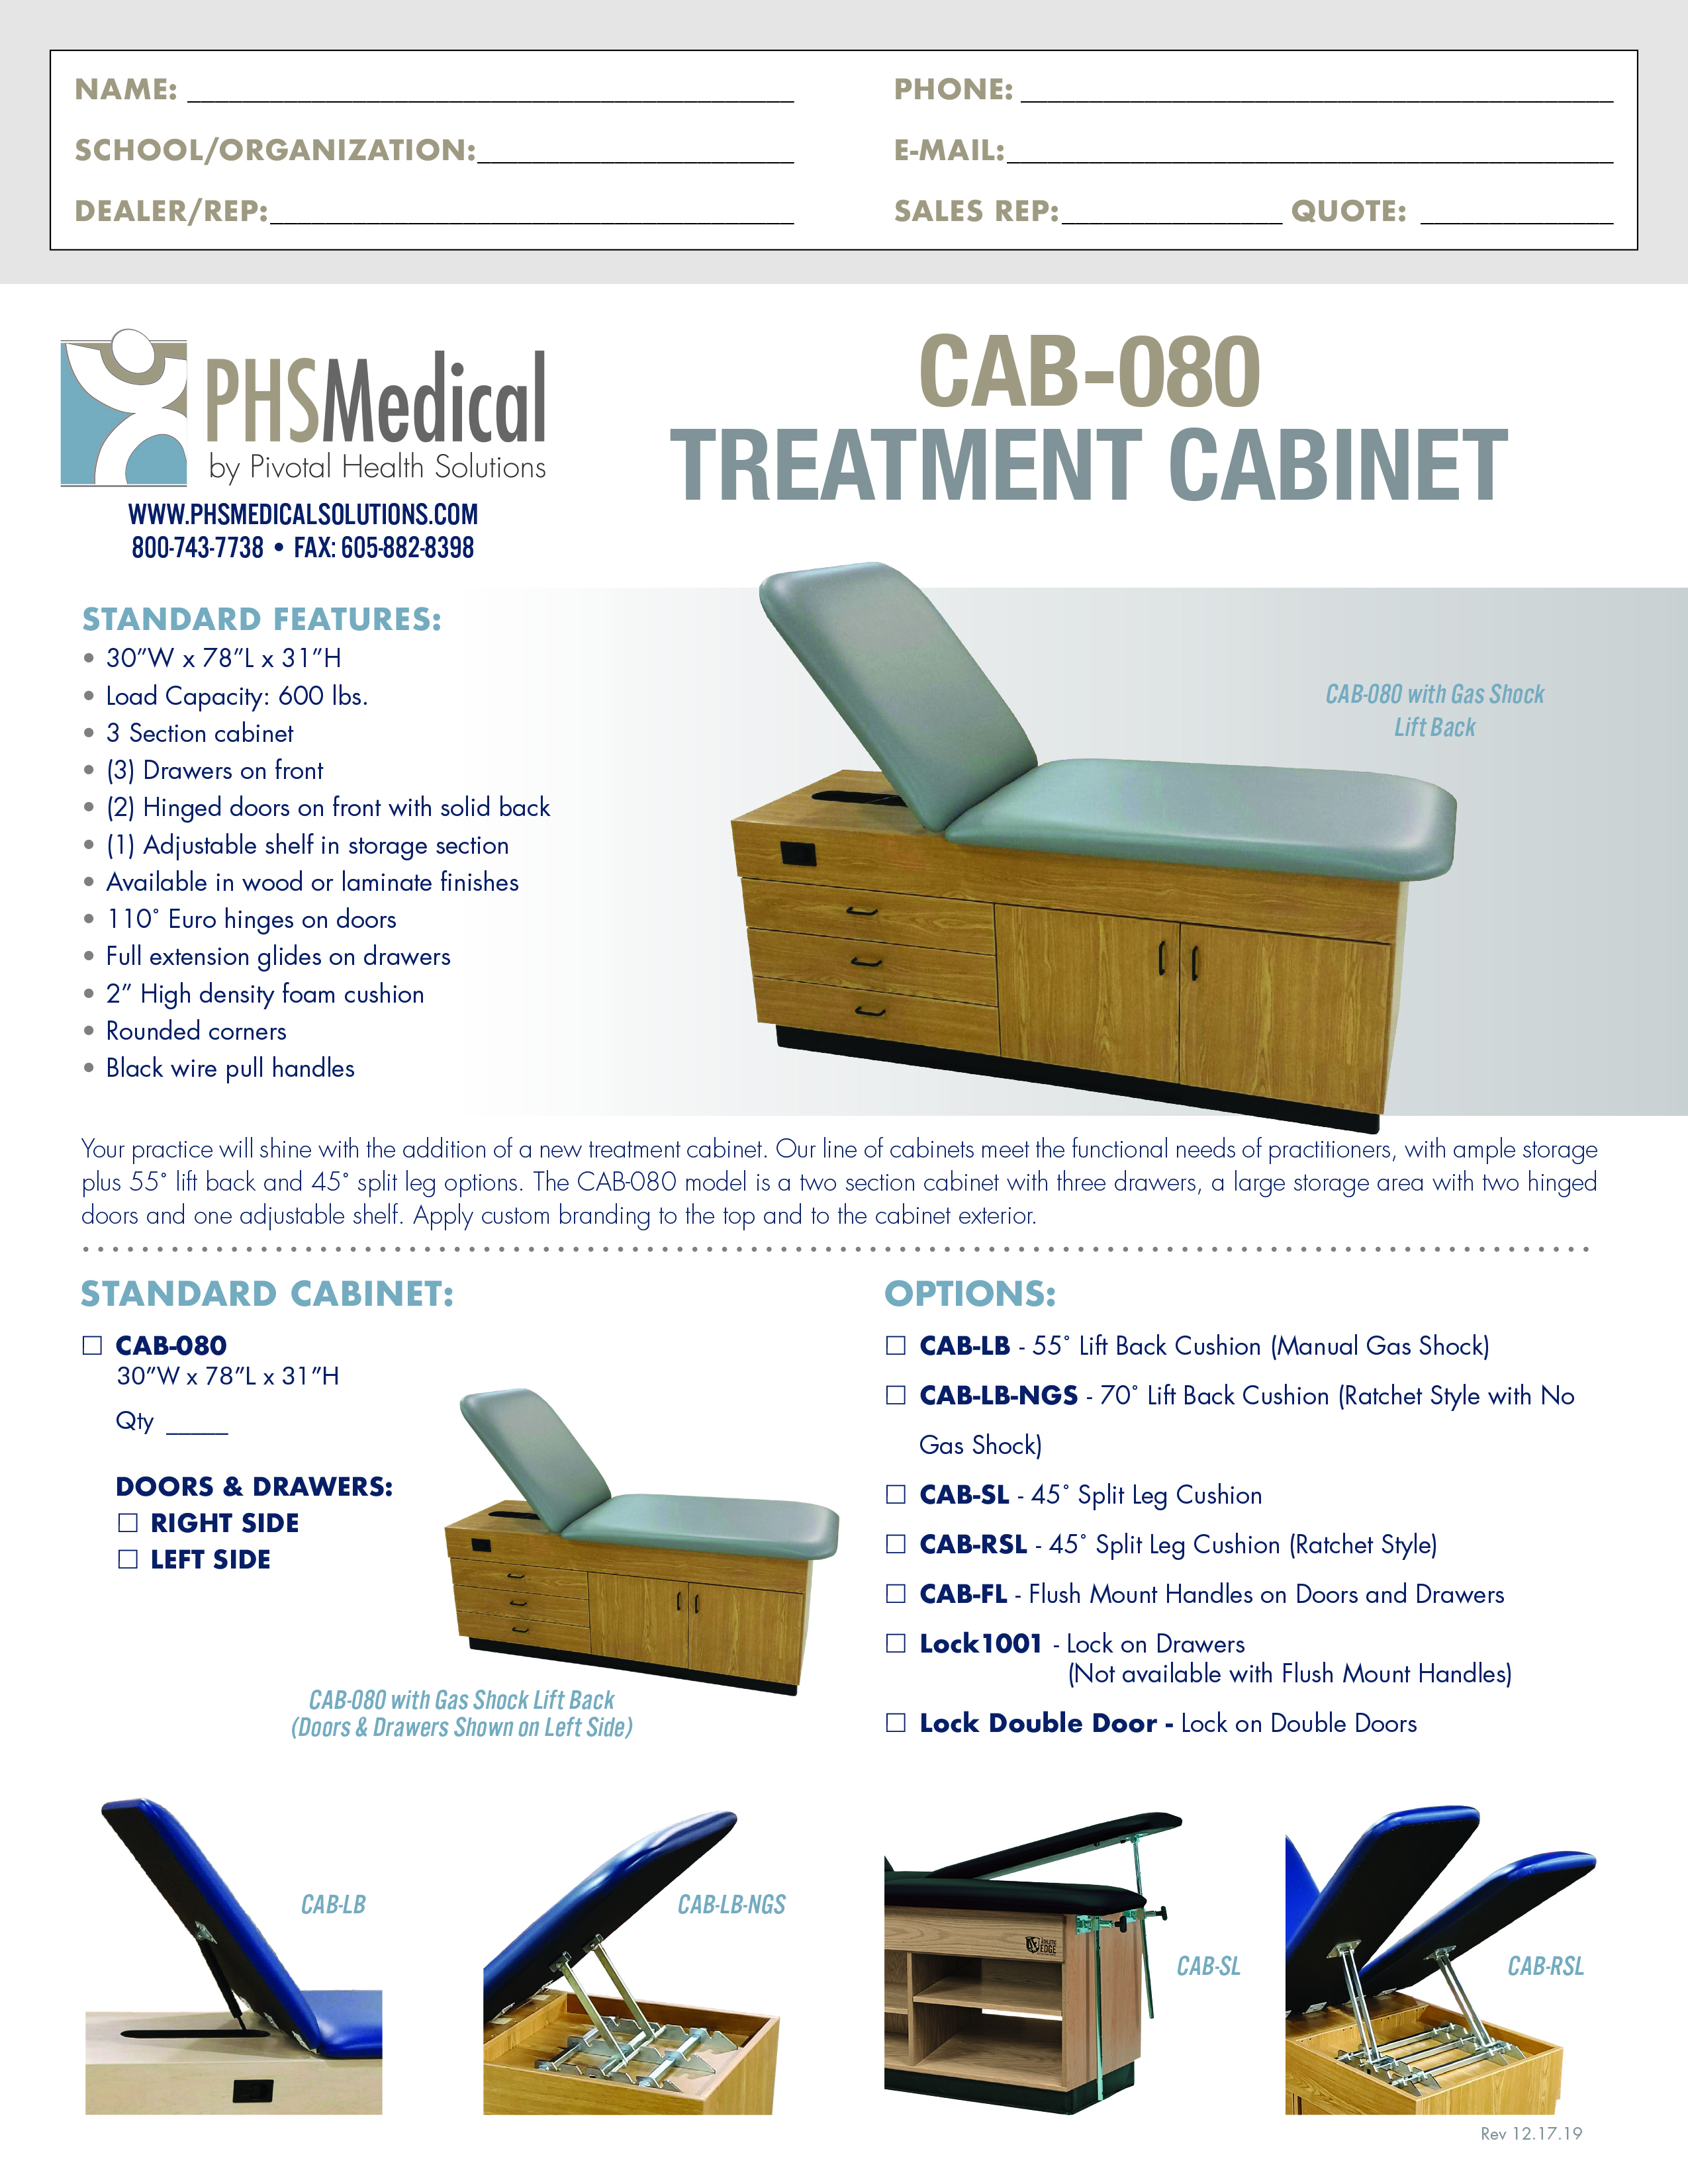 CAB-080 Treatment Cabinet Data Sheet